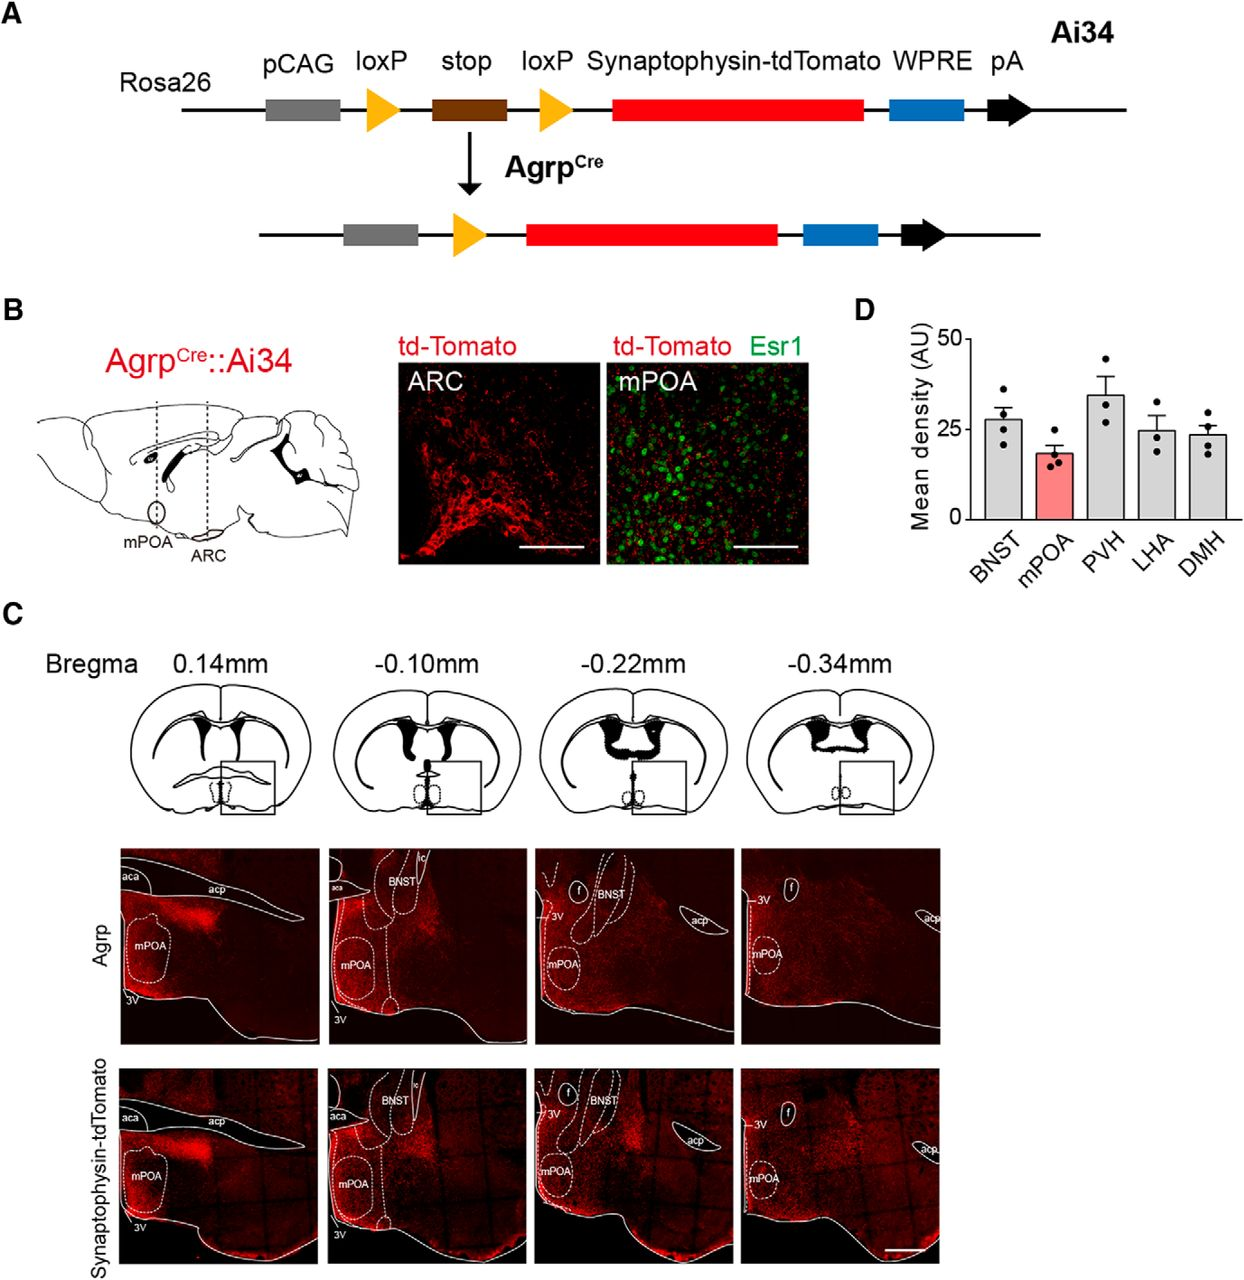 AGRP Neurons Project to the Medial Preoptic Area and